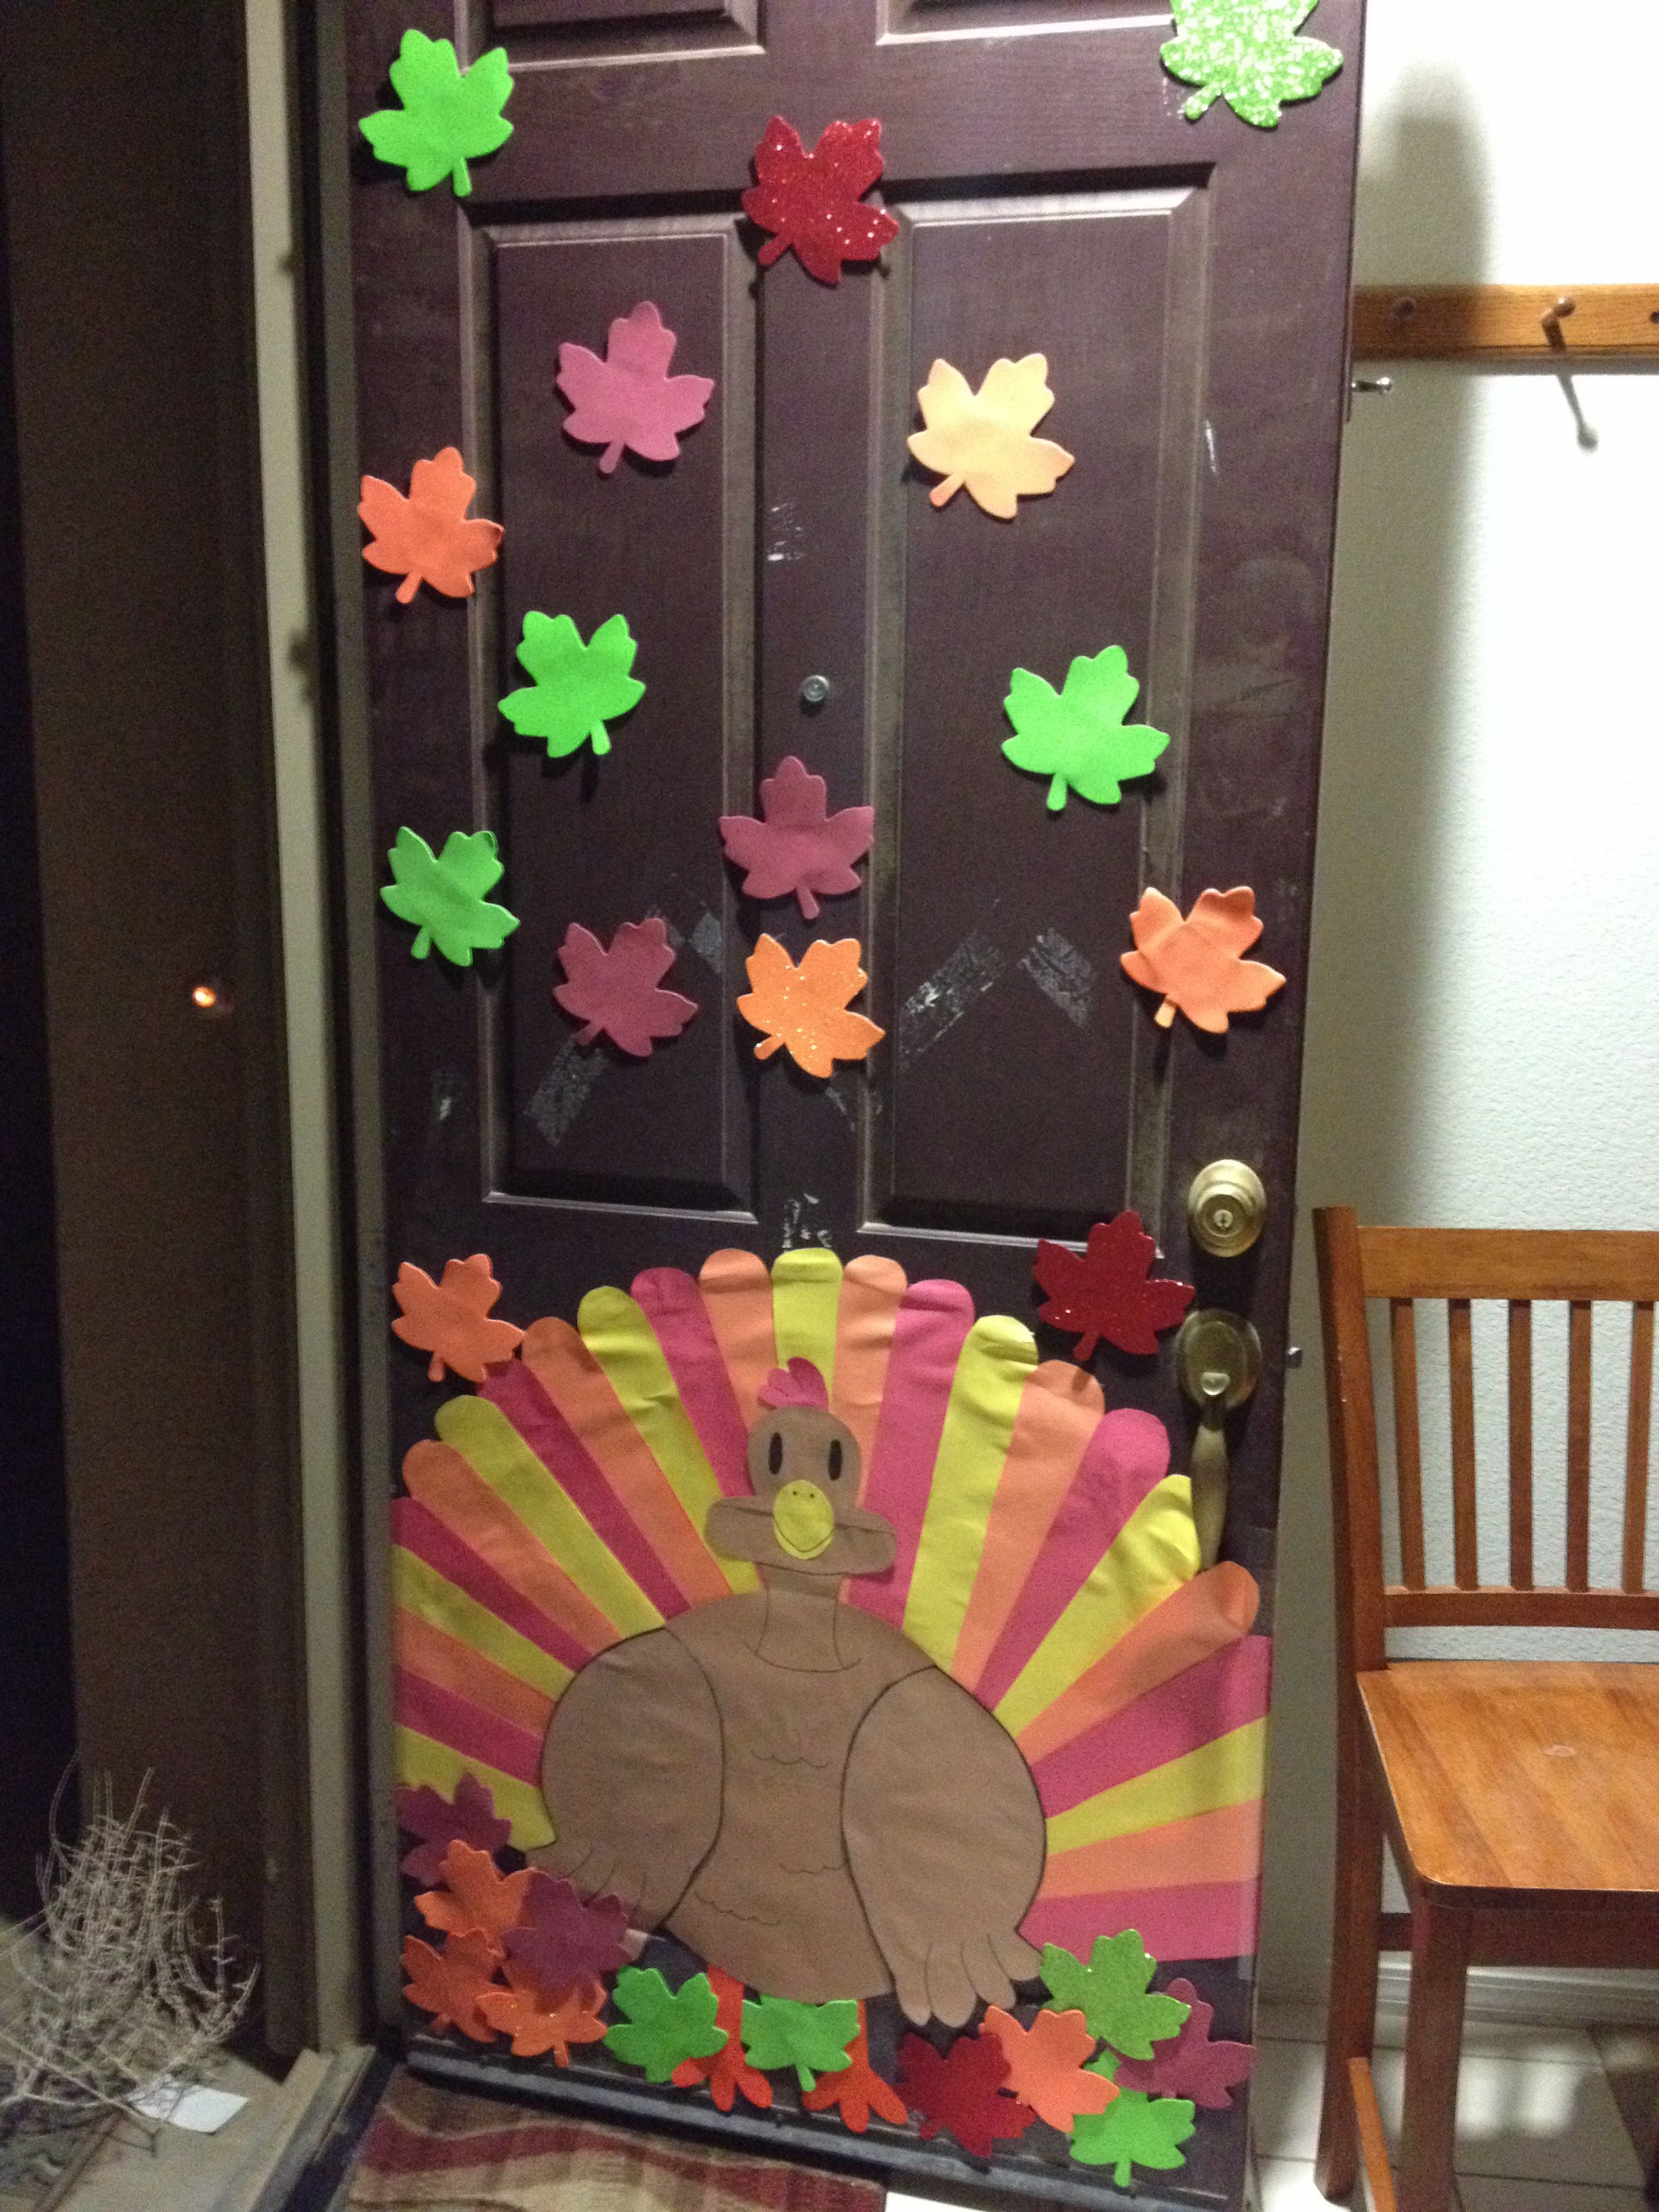 Thanksgiving door decorations | Thanksgiving decorations ...